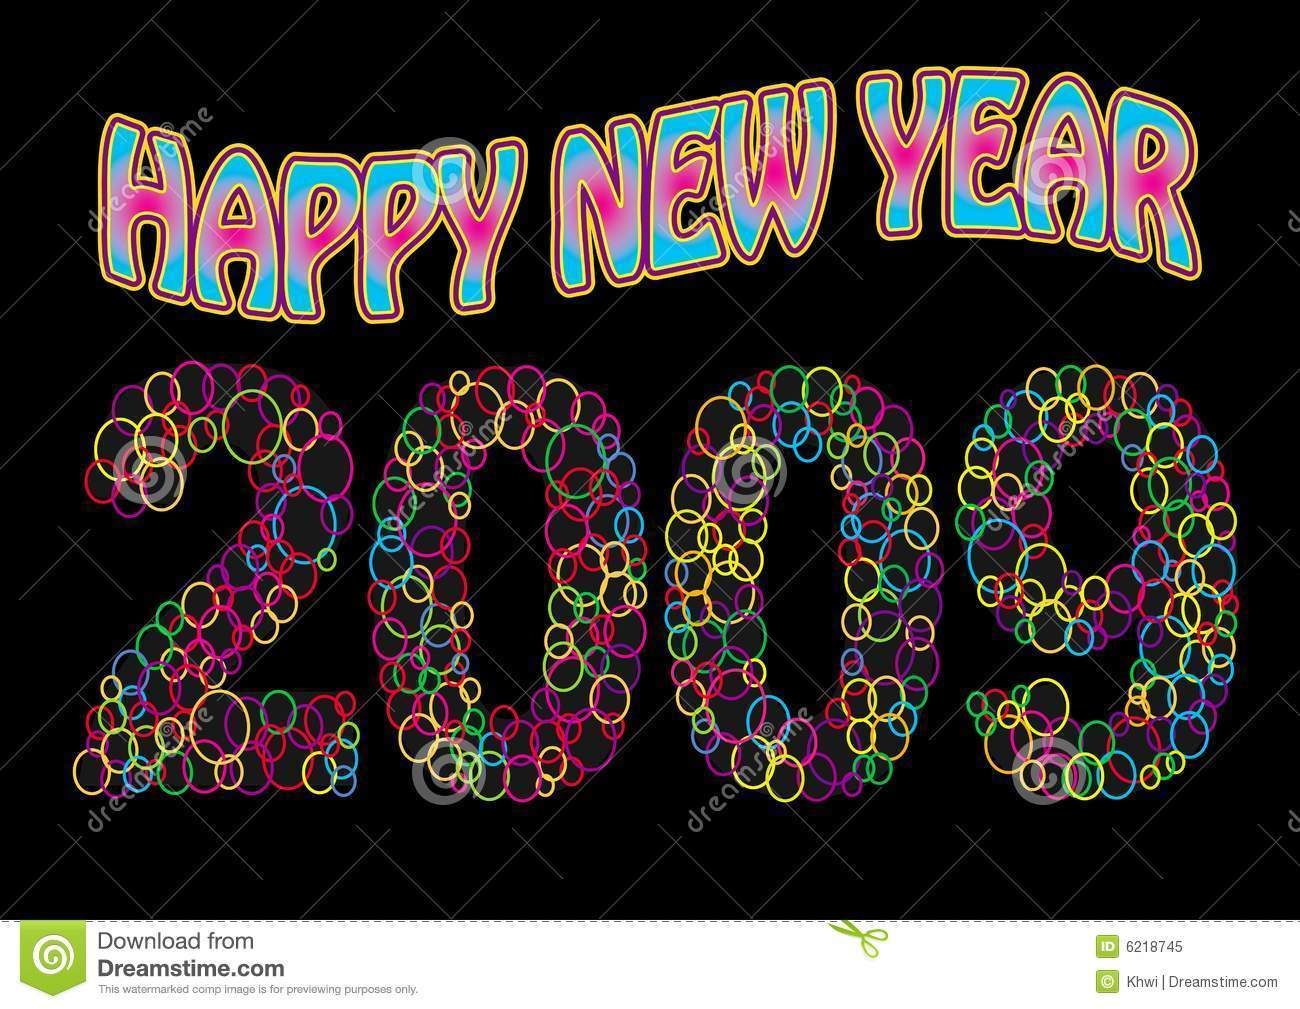 New year 2009 clipart image transparent download Happy new year 2009 clipart 9 » Clipart Portal image transparent download